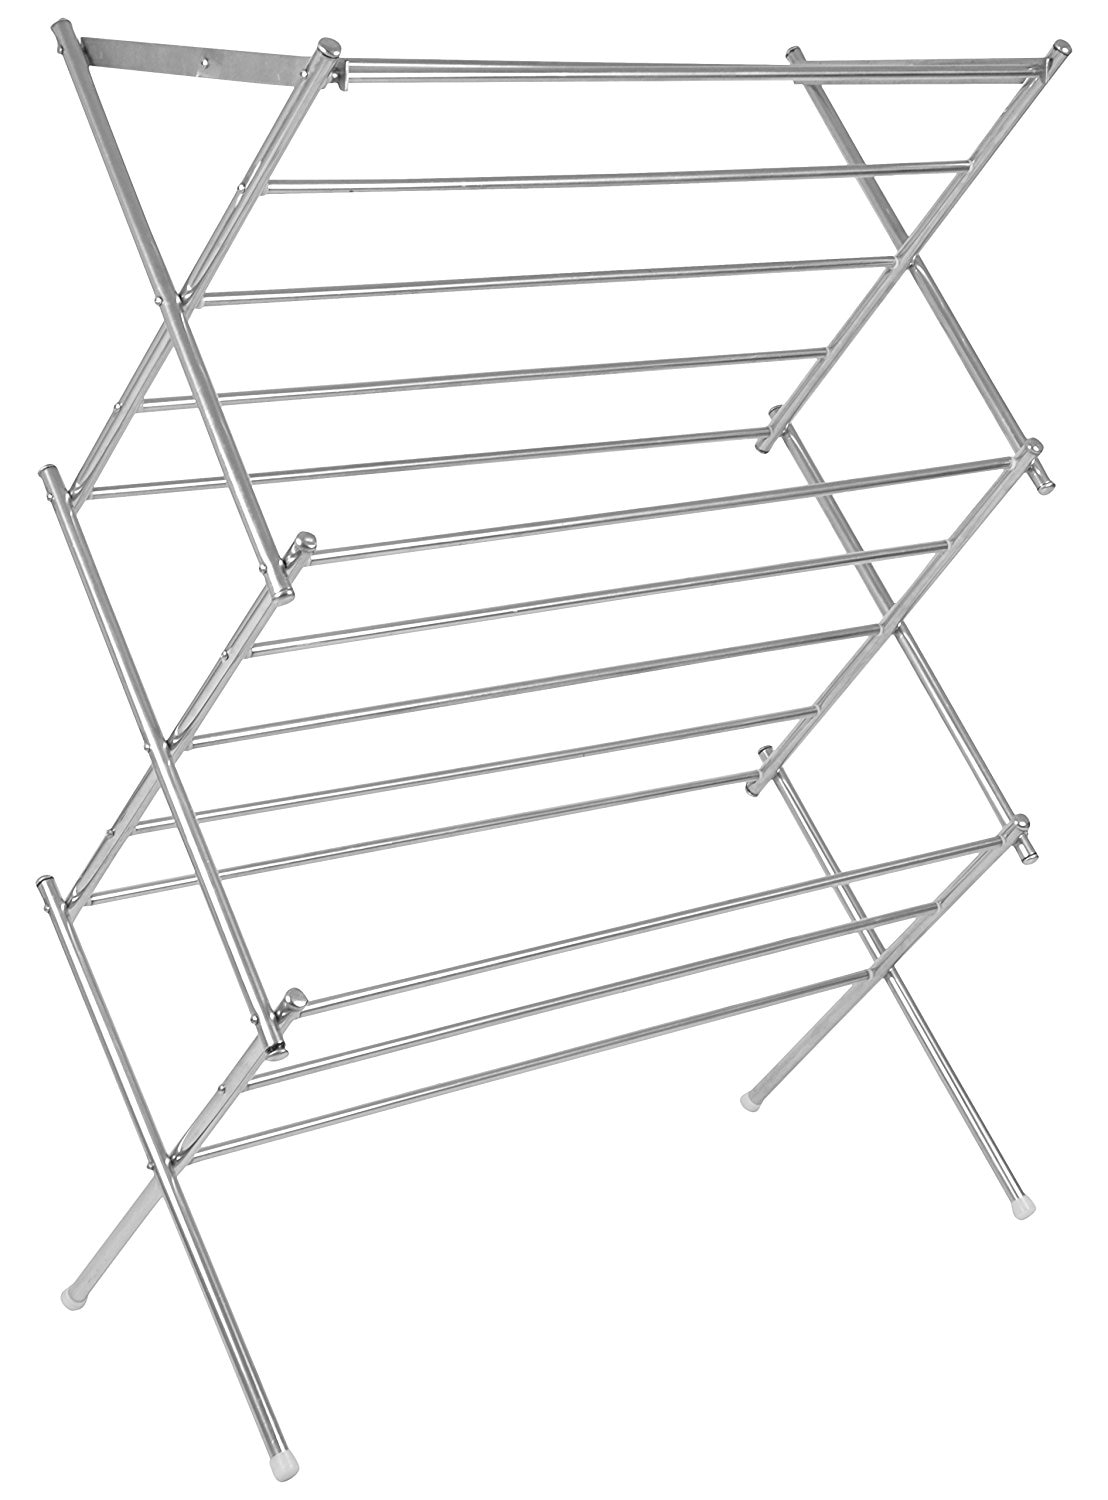 Zig Zag Cloth Drying Stand In Coimbatore   Rust proof stainless steel construction.  Foldable / portable.  Maintenance free.  Ideal for indoor / outdoor drying. OPTION : Drying length: 48 & 36.  Steel Stand In Coimbatore  Foldable Stand In Coimbatore  Cloth Drying Stand In Coimbatore  SS Stand In Coimbatore